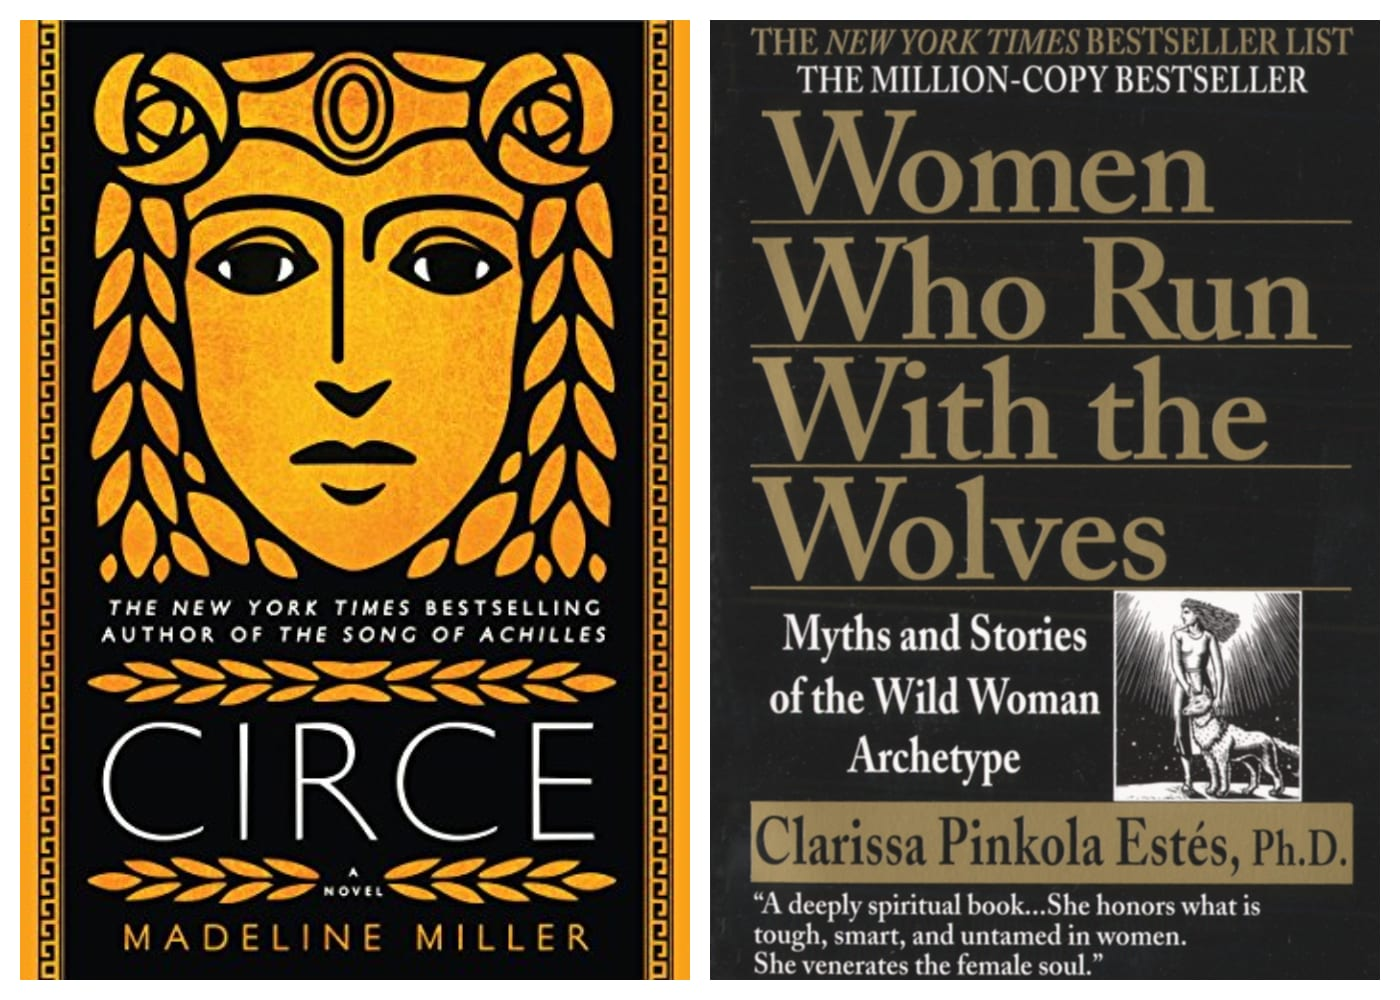 Circe by Madeline Miller | Women Who Run With the Wolves: Myths and Stories of the Wild Woman Archetype by Dr. Clarissa Pinkola Estés | feminist books